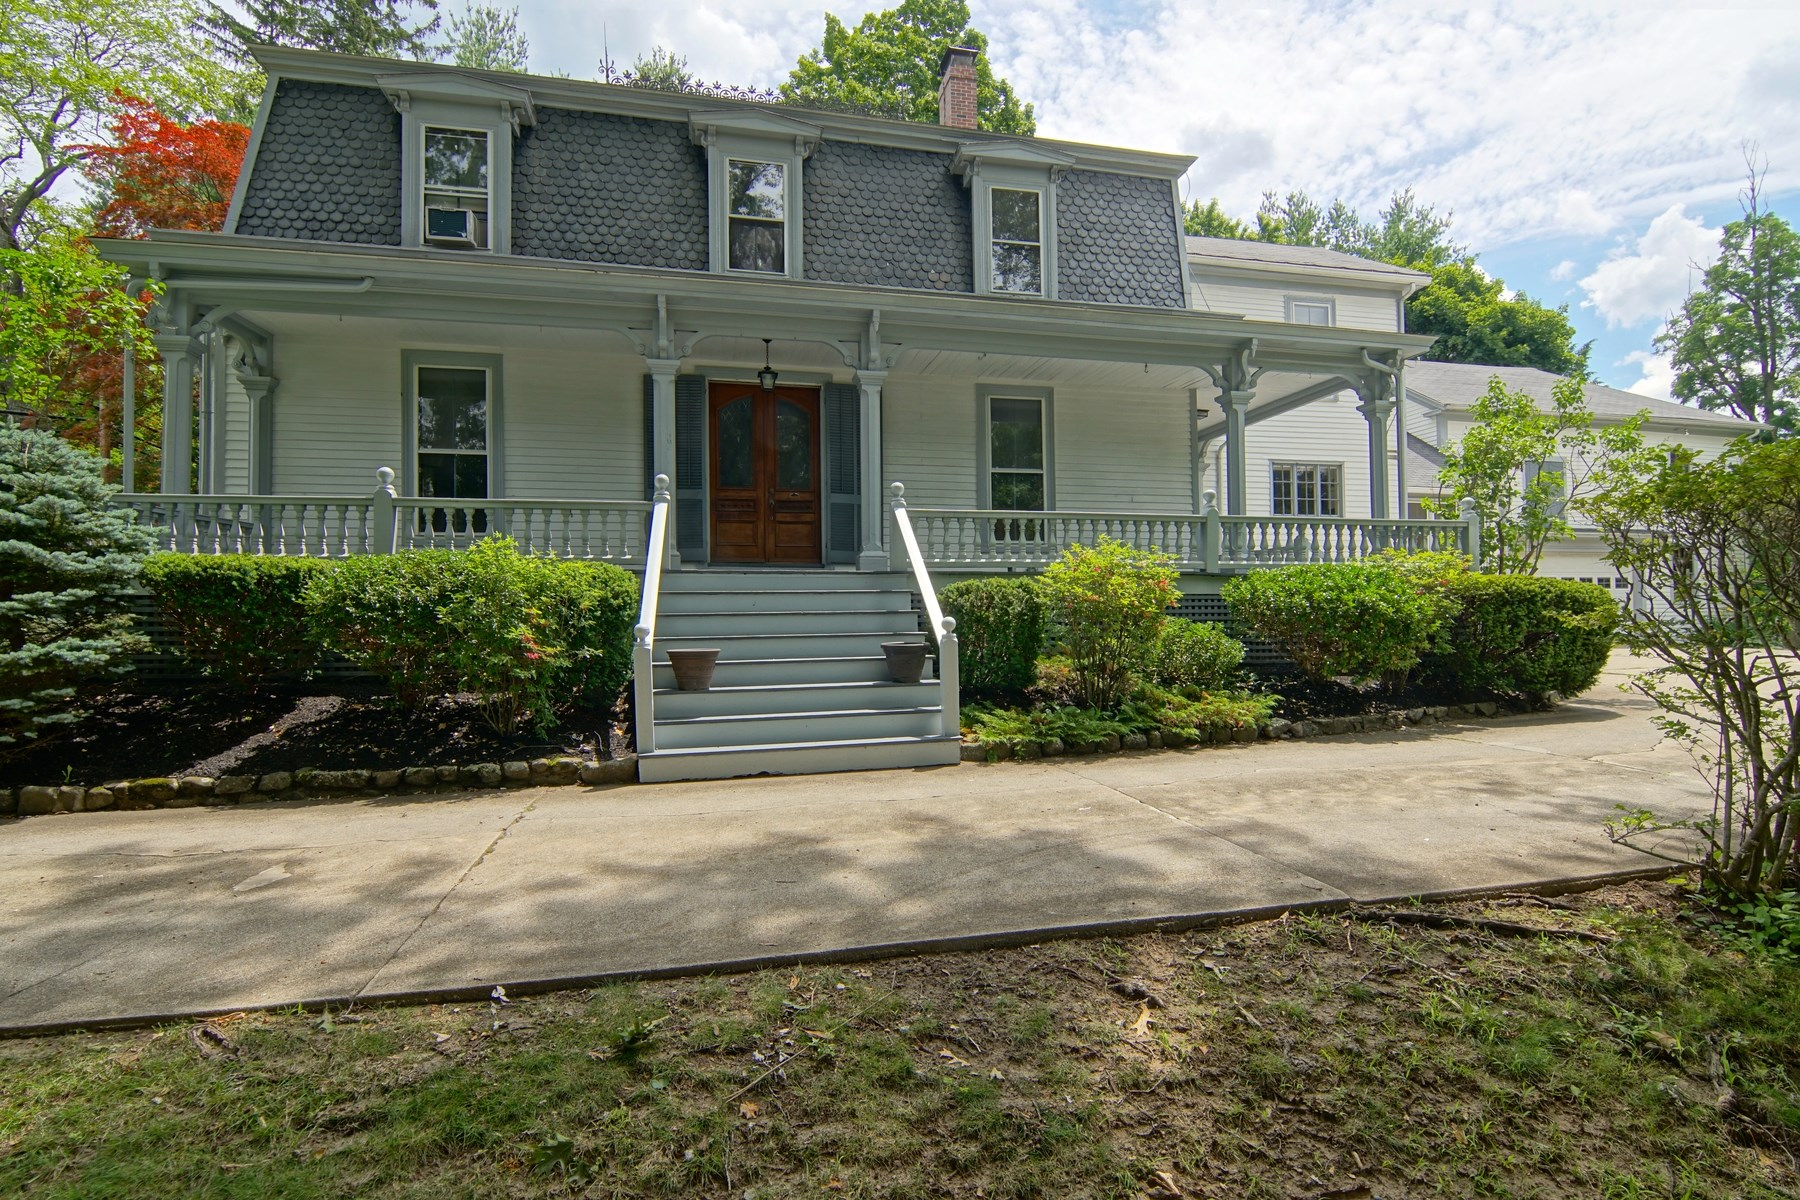 Single Family Home for Sale at Gracious In-Town Victorian 129 High Street Exeter, New Hampshire 03833 United States